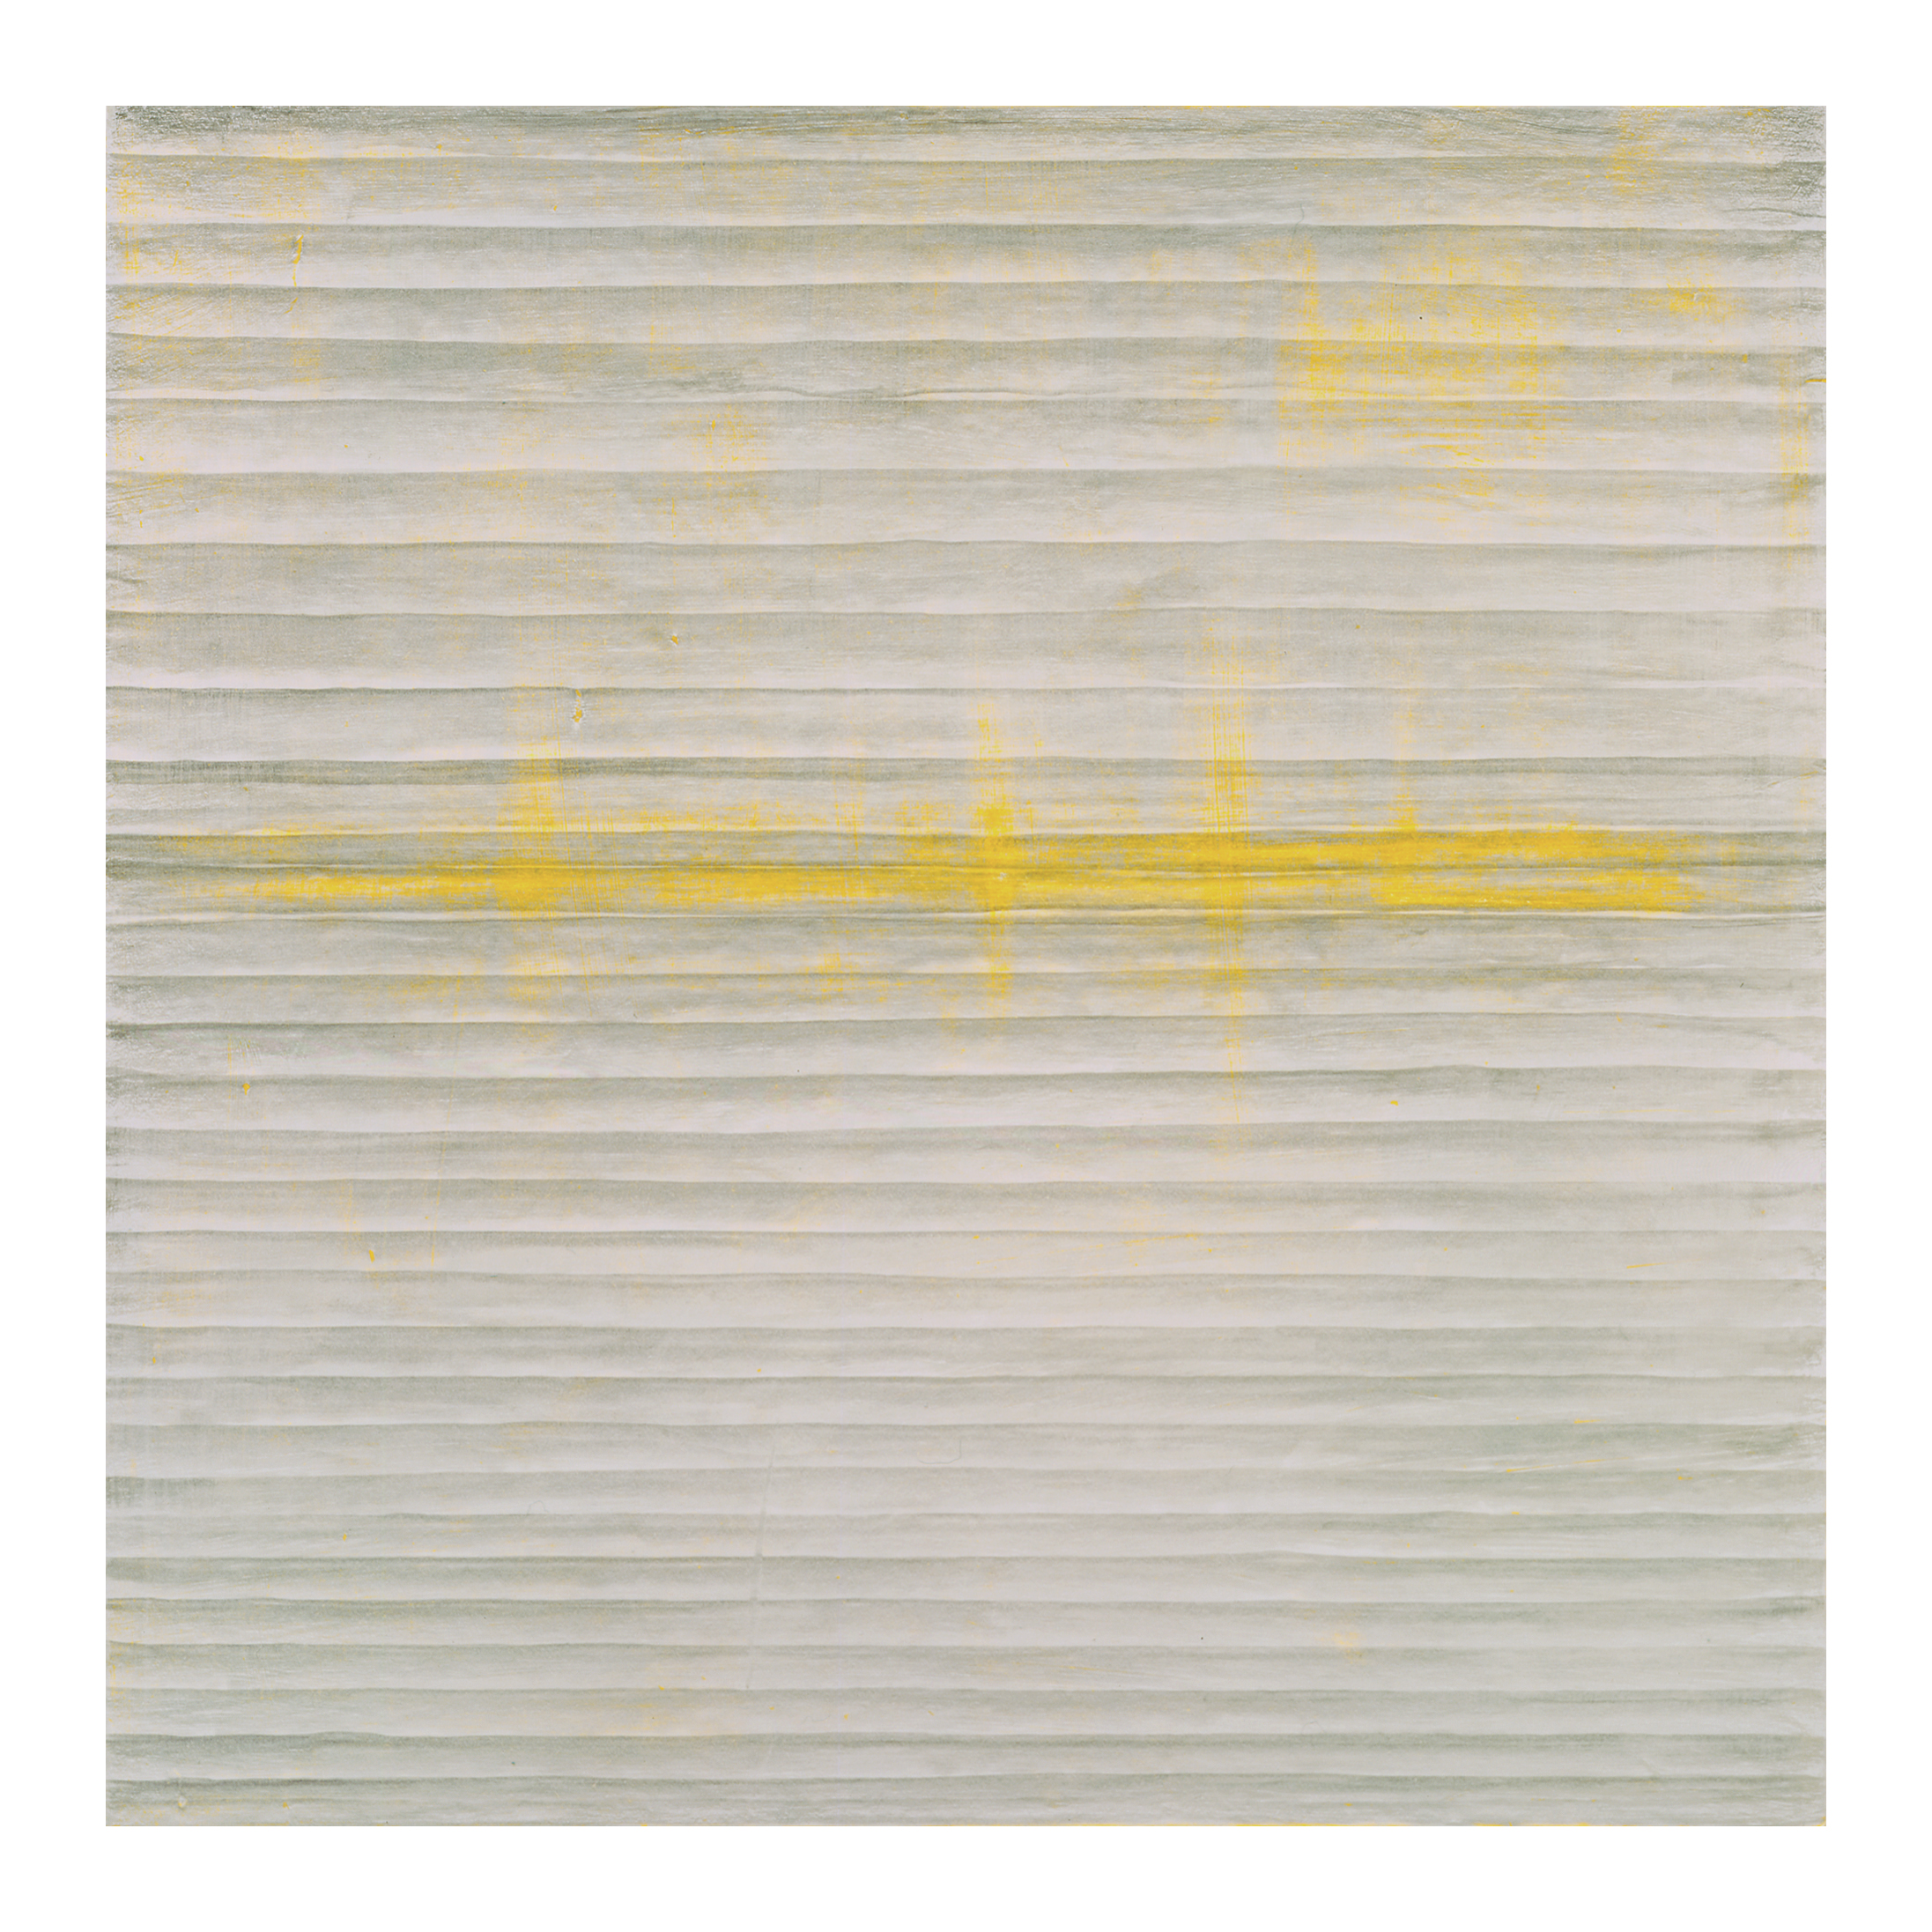 SUSAN SCHWALB  Desert Nocturne  2006 silverpoint and acrylic on wood panel, 24 x 24 inches